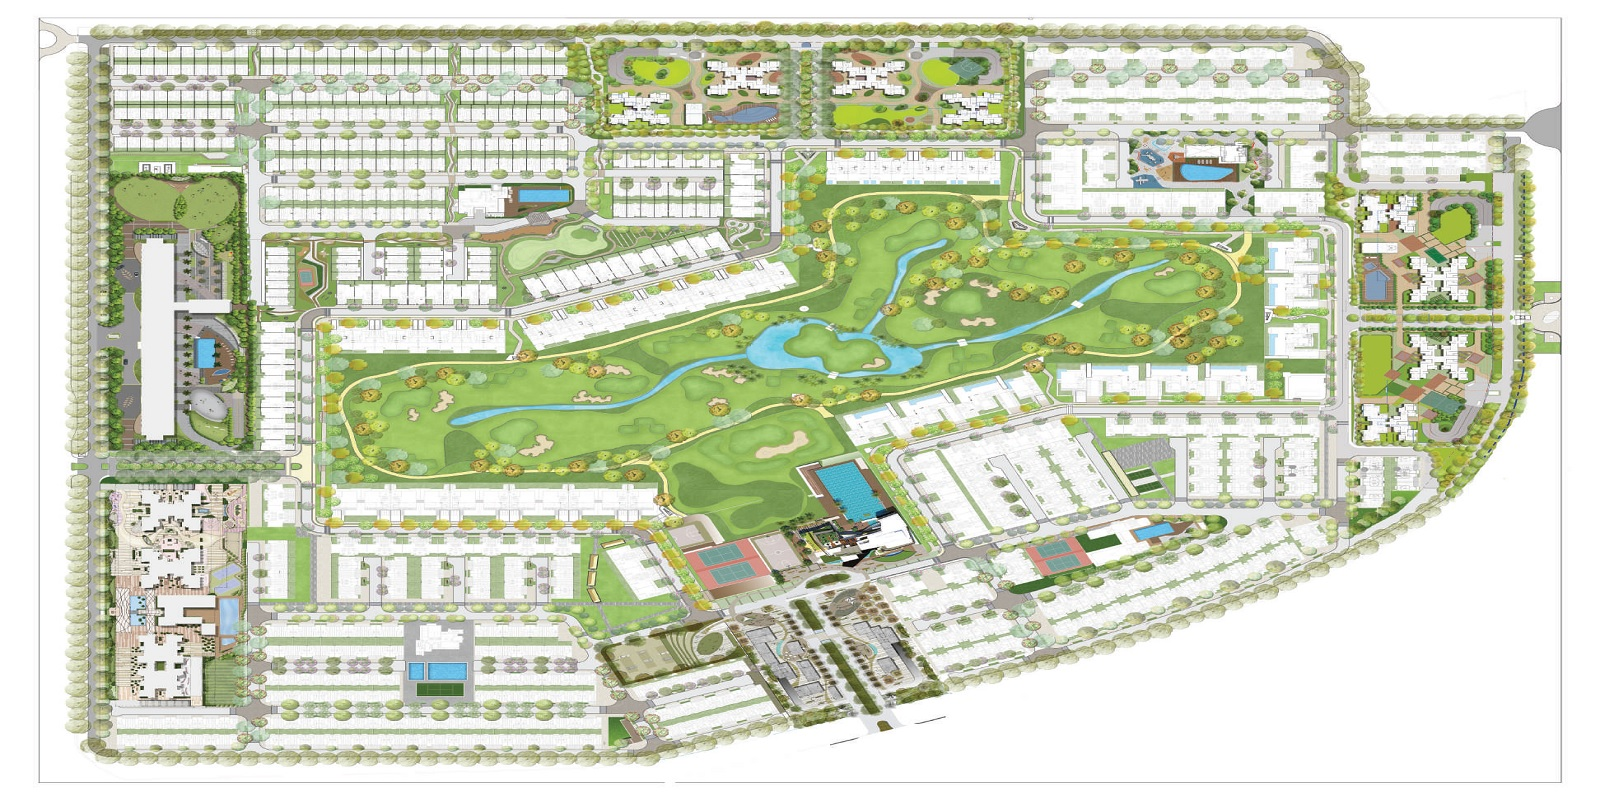 godrej golf links exquisite master plan image5